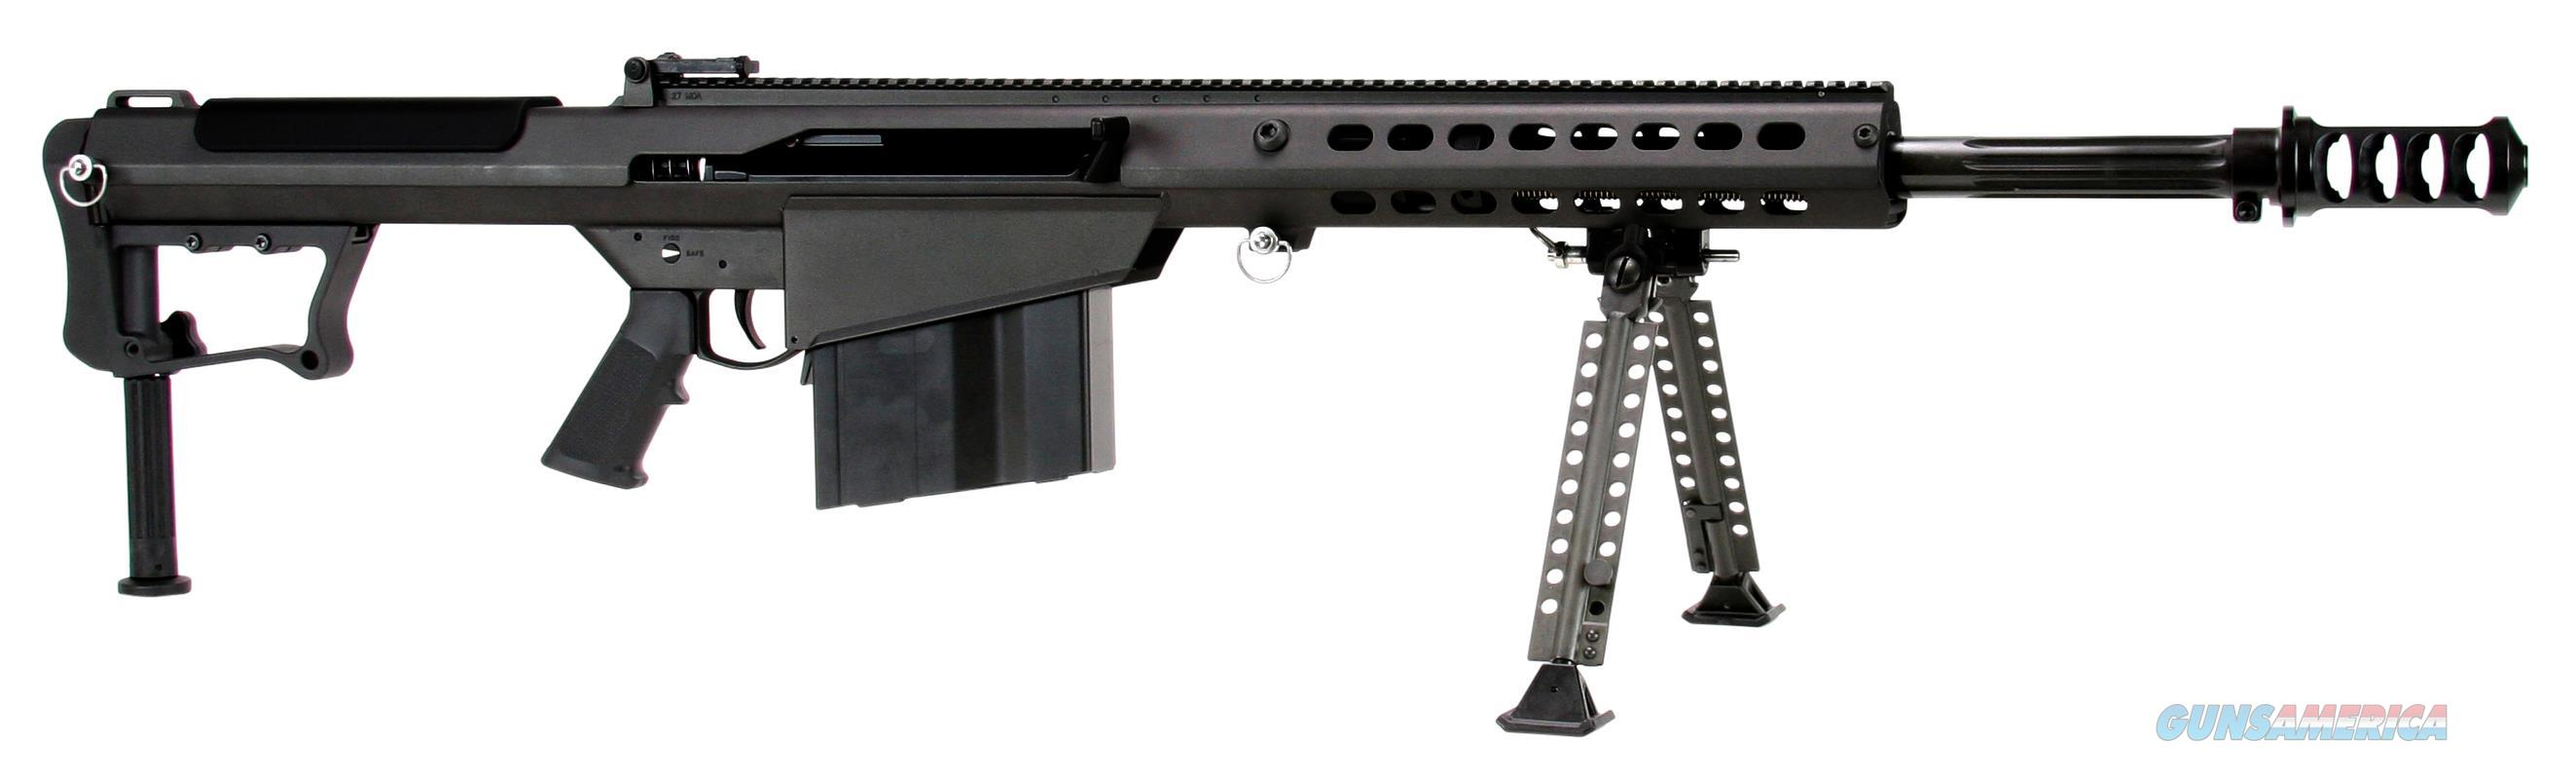 "Barrett 14084 M107 A1 Semi-Automatic 50 Browning Machine Gun (Bmg) 20"" 10+1 Fixed Blk Stk Blk Cerakote 14084  Guns > Rifles > B Misc Rifles"